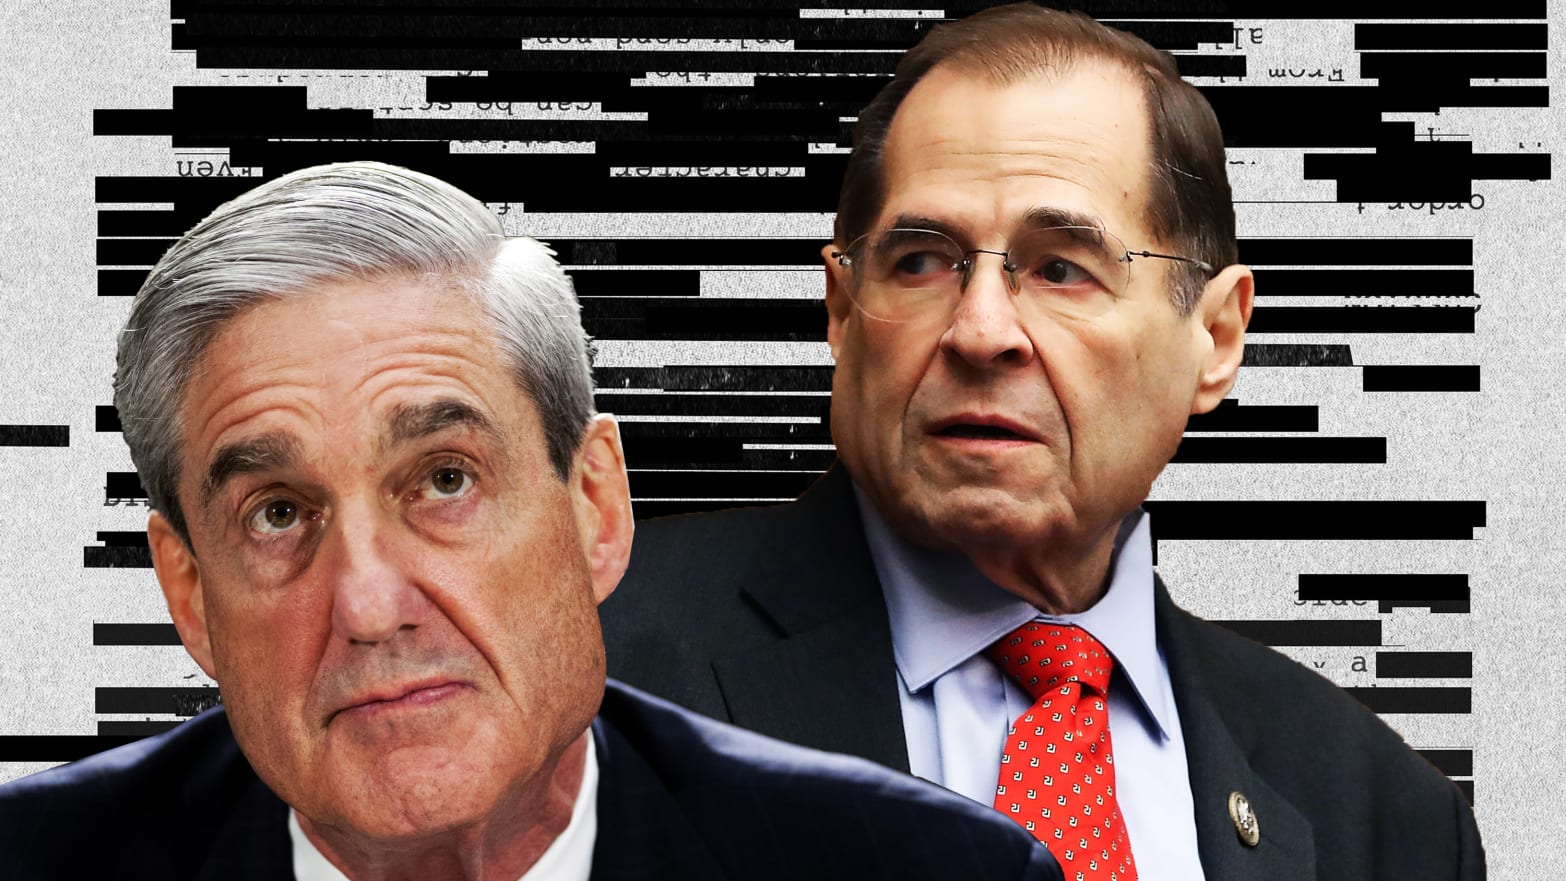 Image result for PHOTOS OF NADLER MUELLER